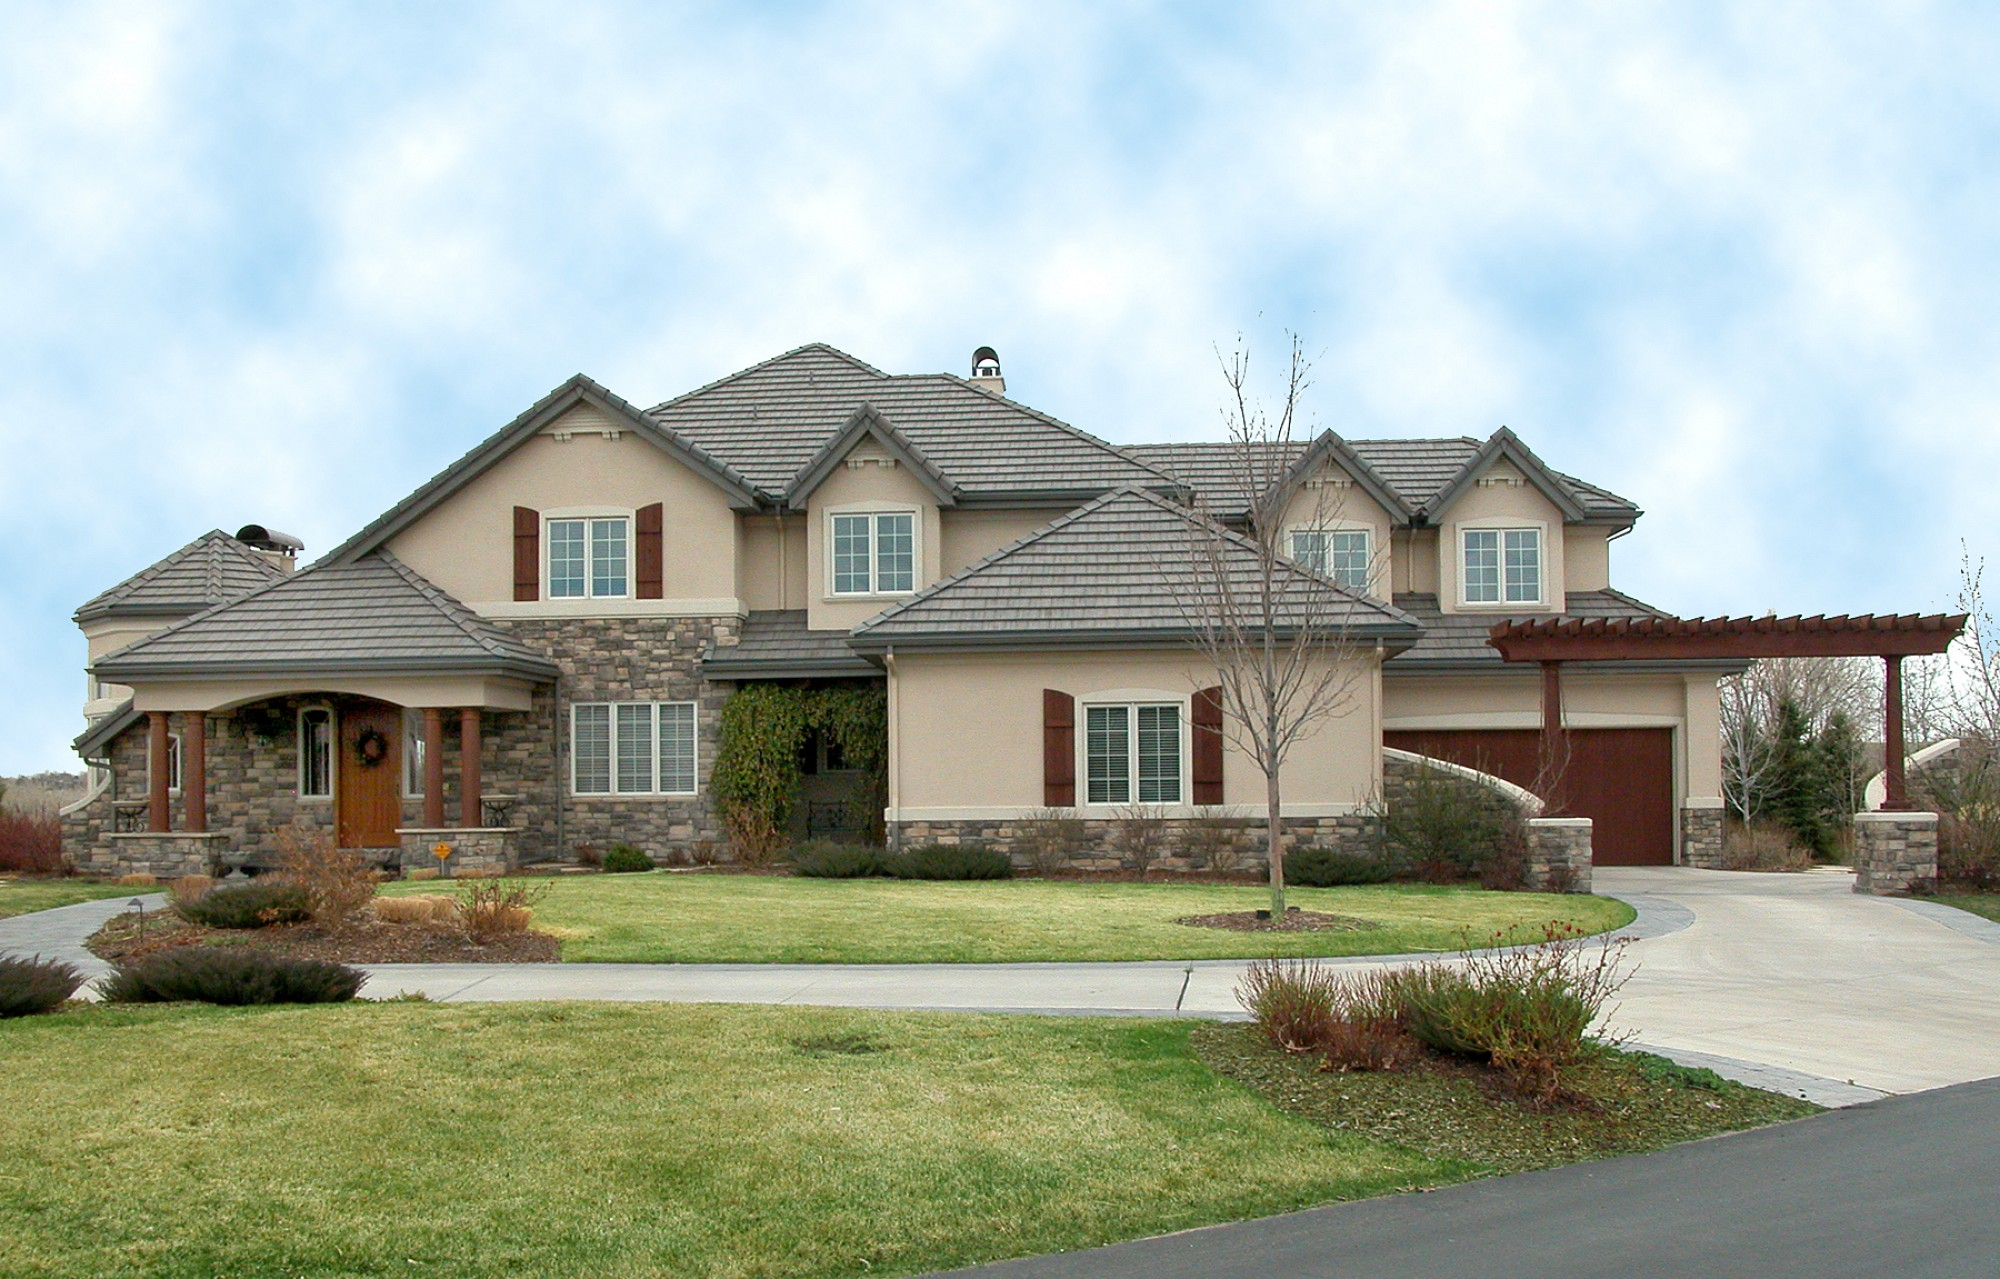 7630 Polo Ridge Drive, Littleton, CO 80128